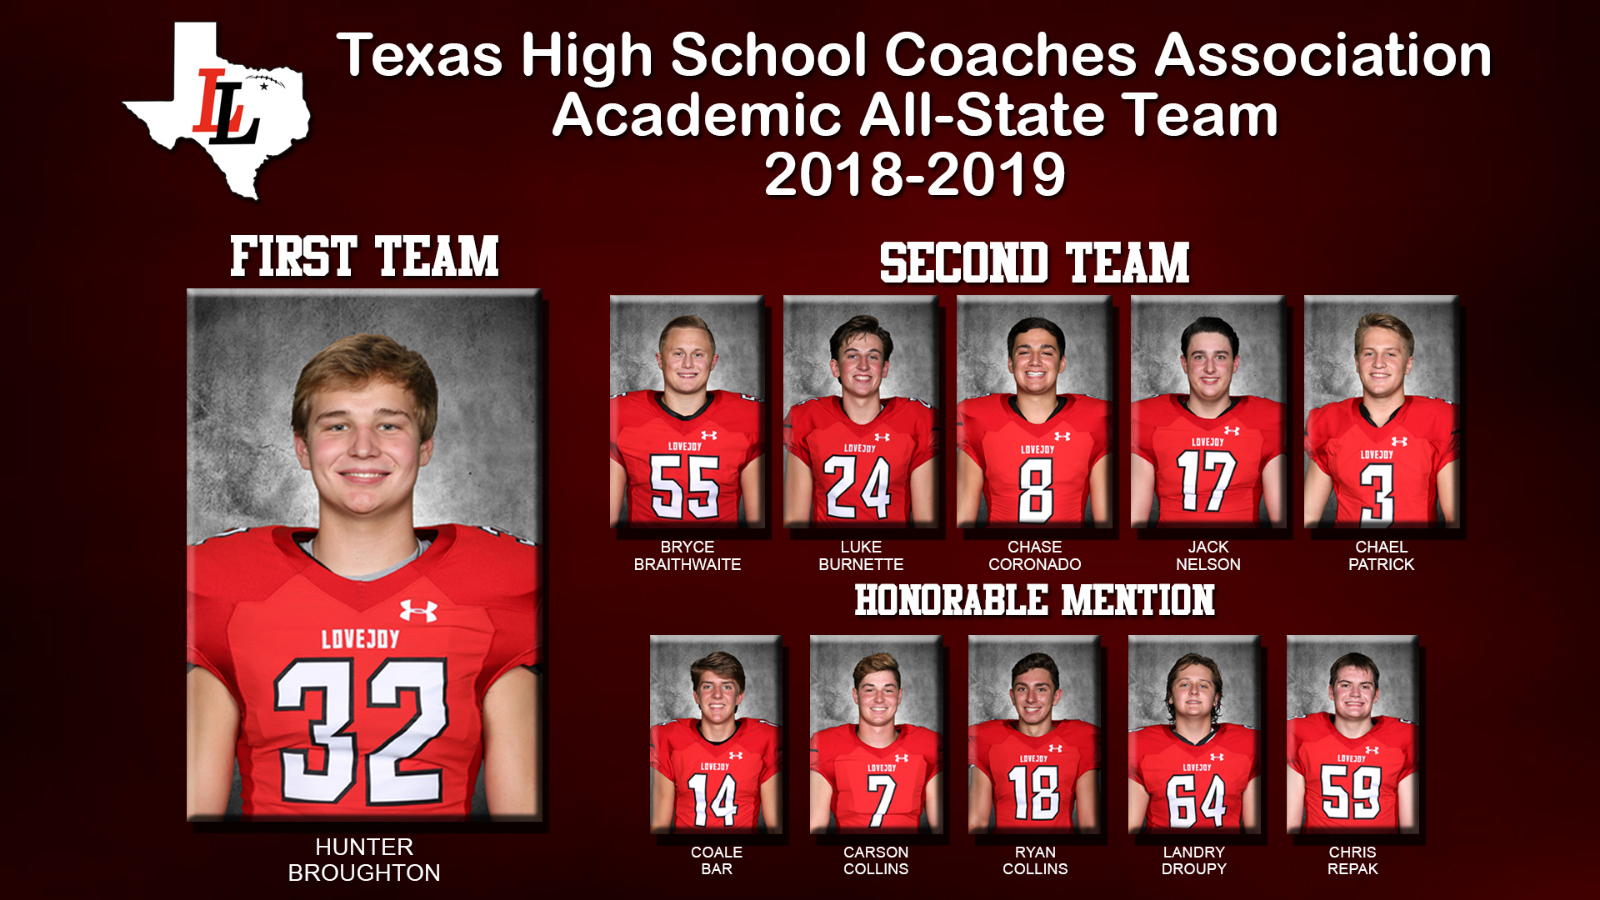 Texas High School Coaches Association 2018-2019 Academic All-State Football Team Announced